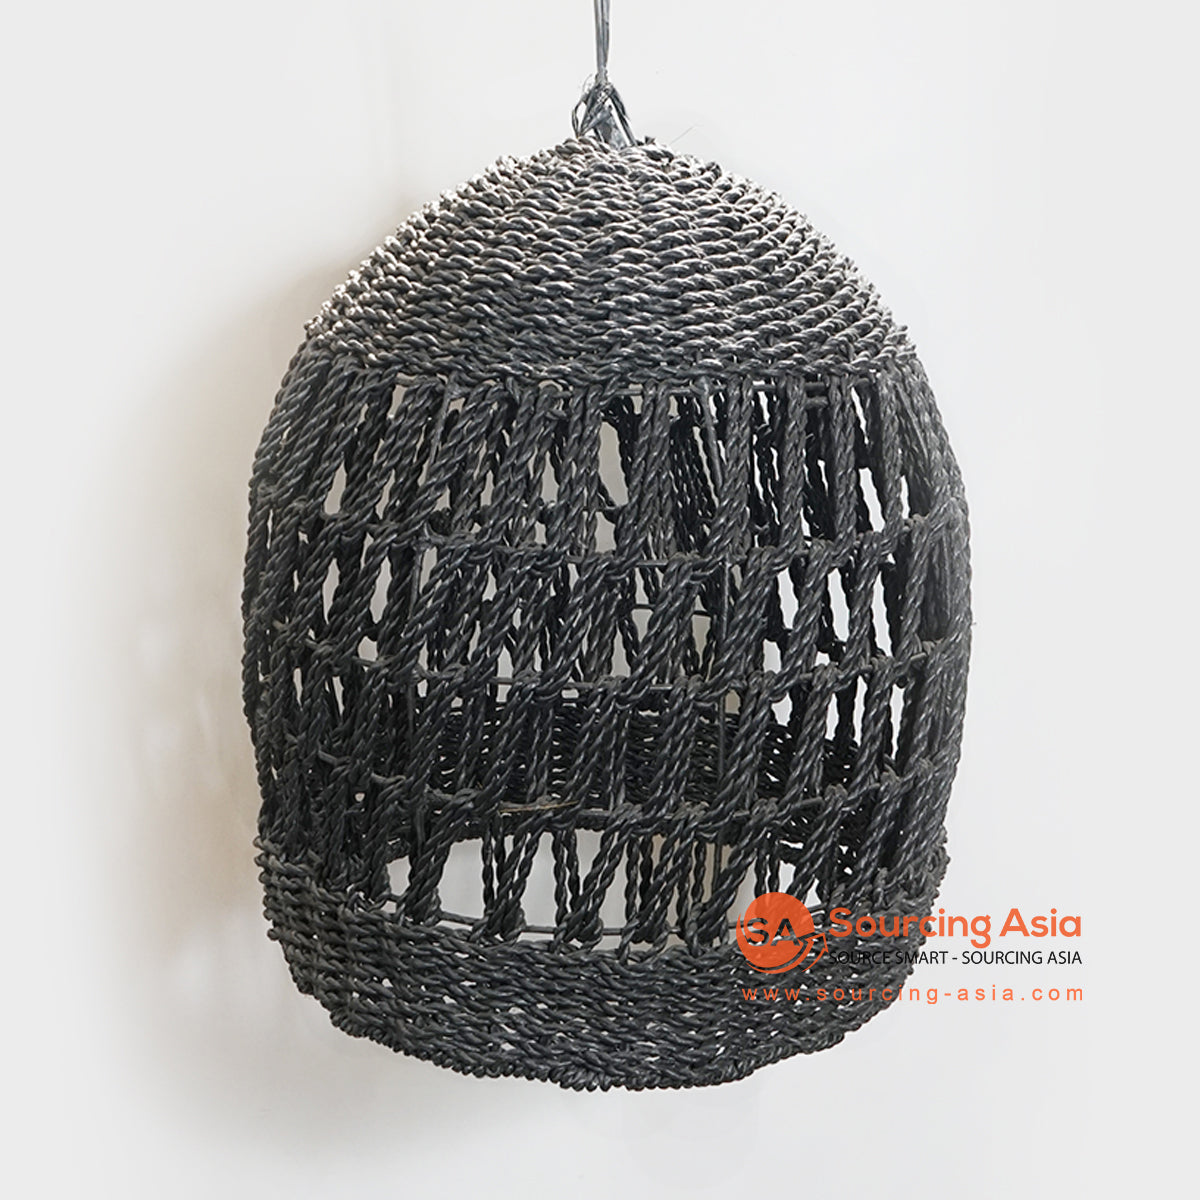 HBSC192 SEA GRASS HANGING LAMP